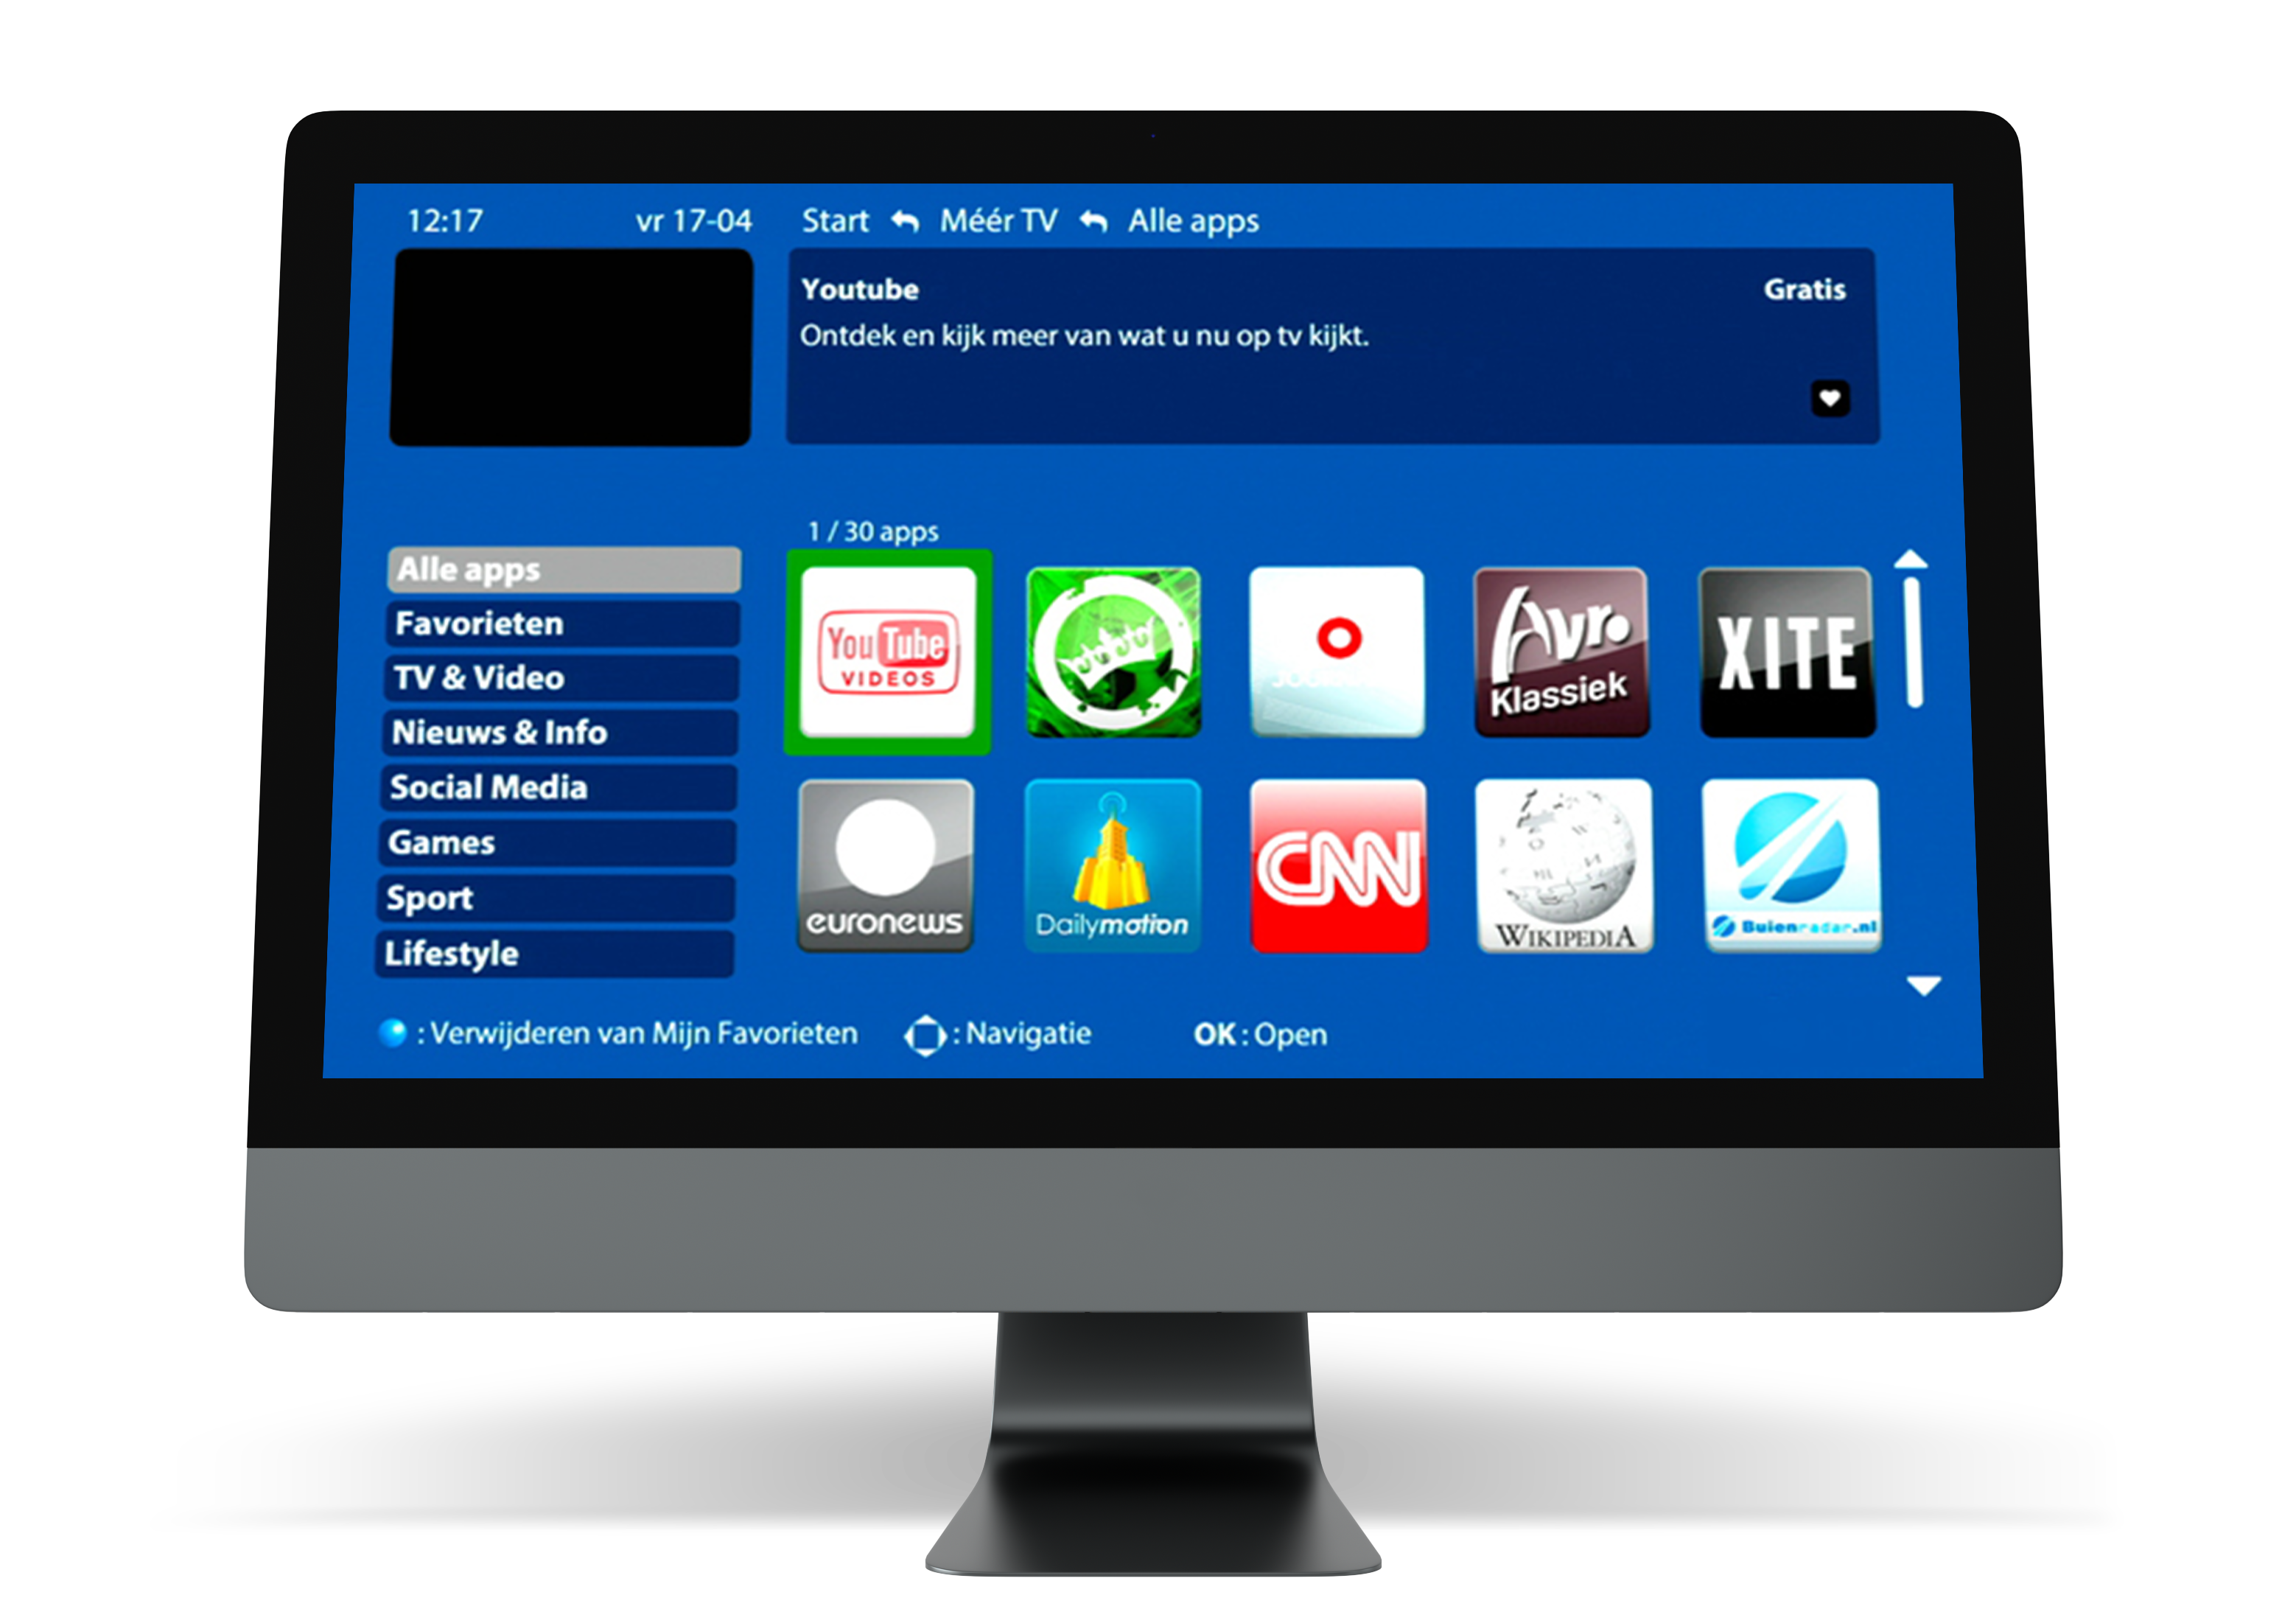 Enhance the IPTV experience with widgets and apps